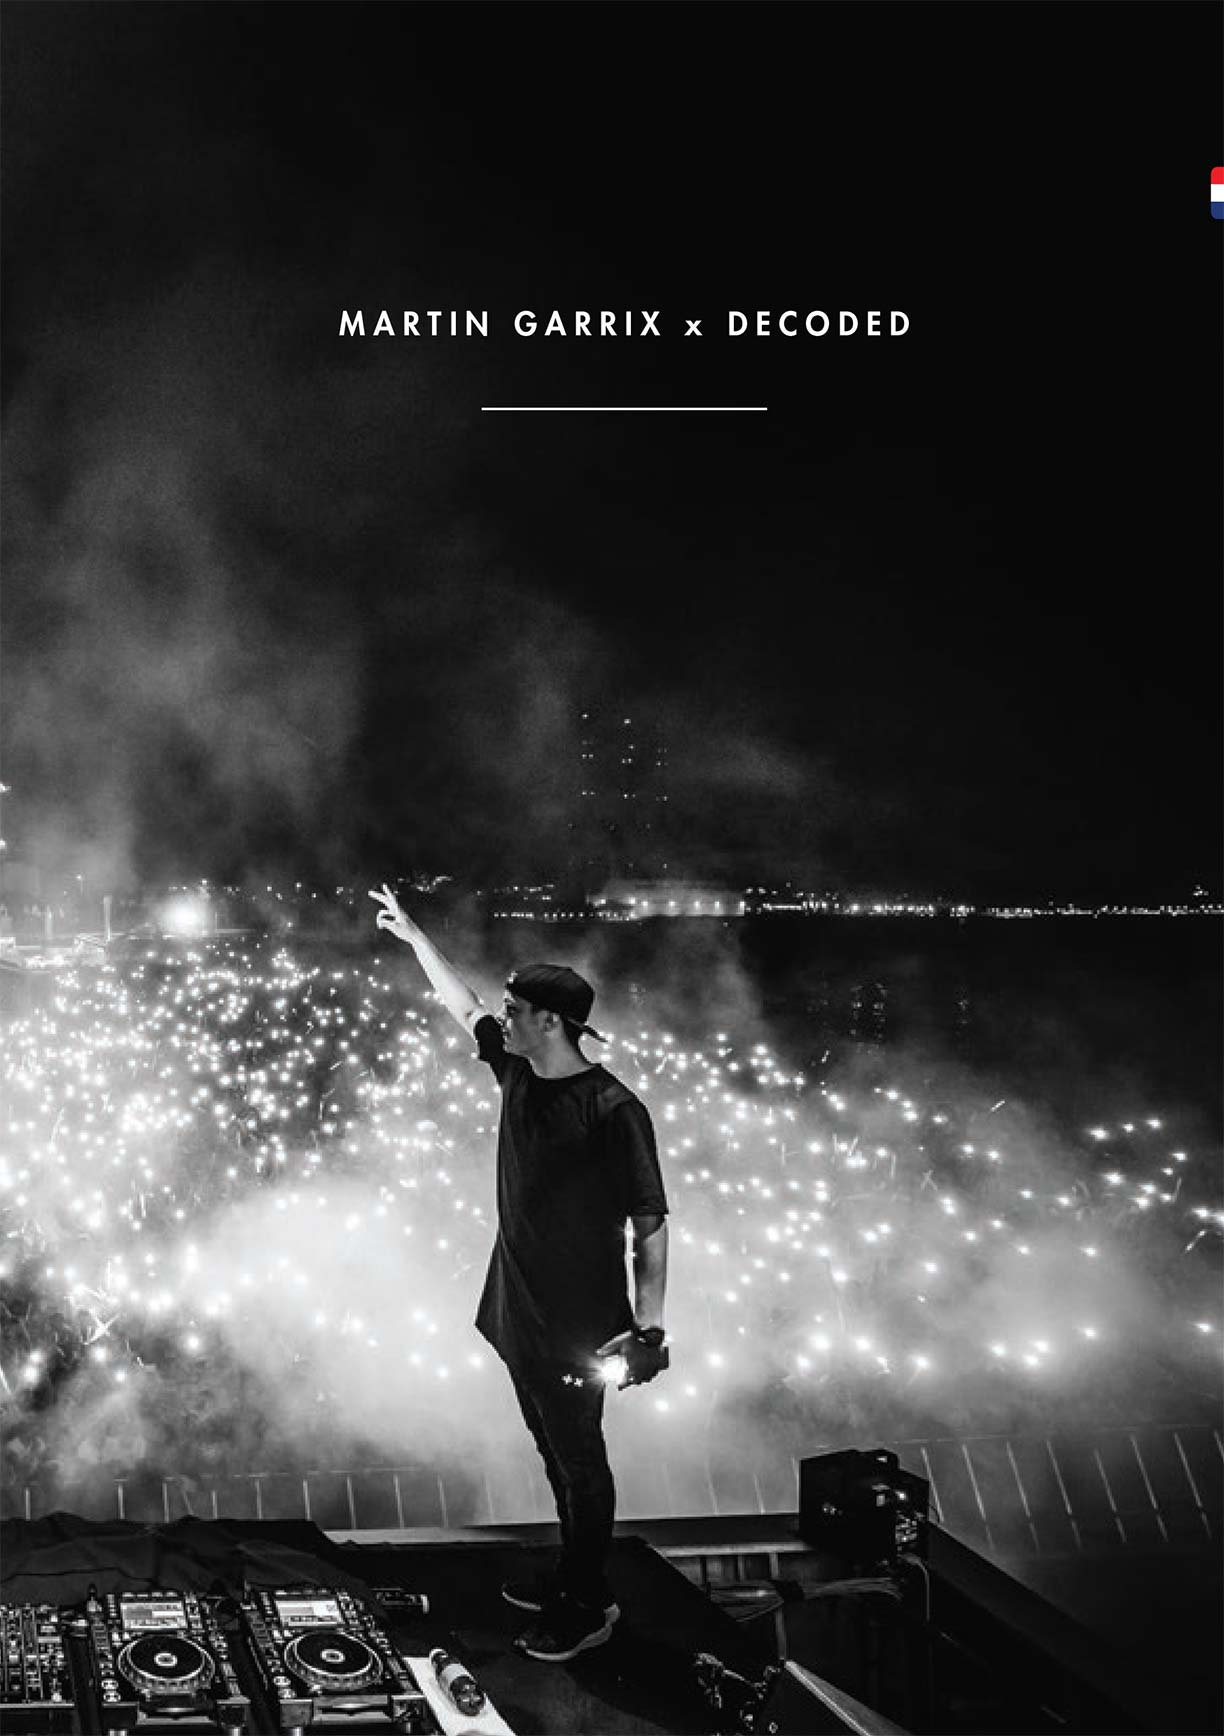 Martin Garrix x Decoded